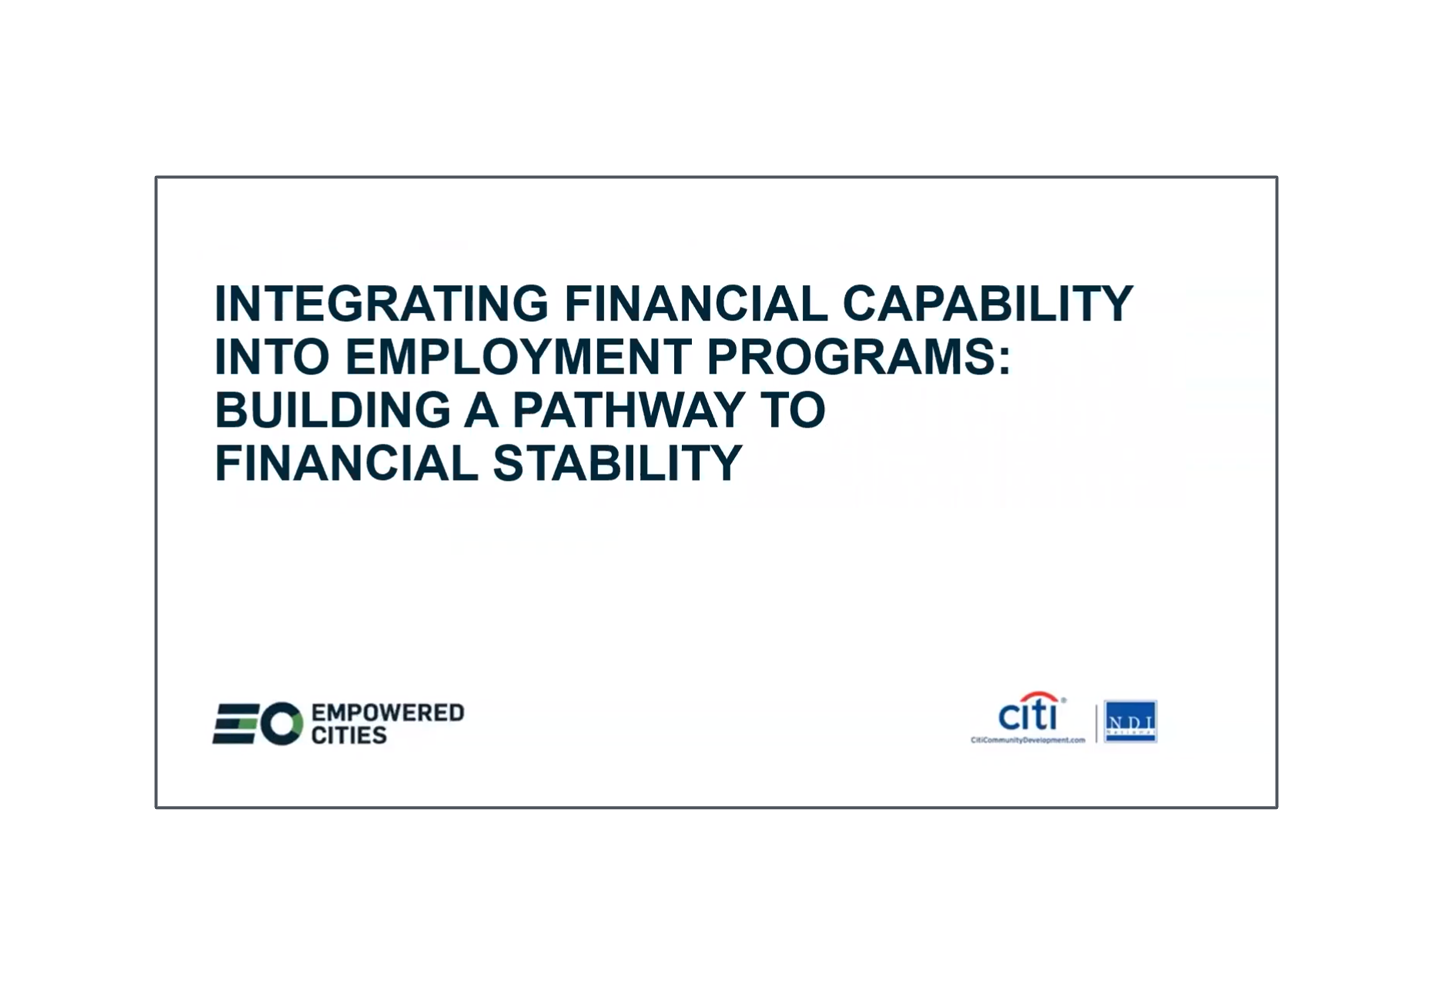 Integrating Financial Capability into Employment Programs – Building a Pathway to Financial Stability